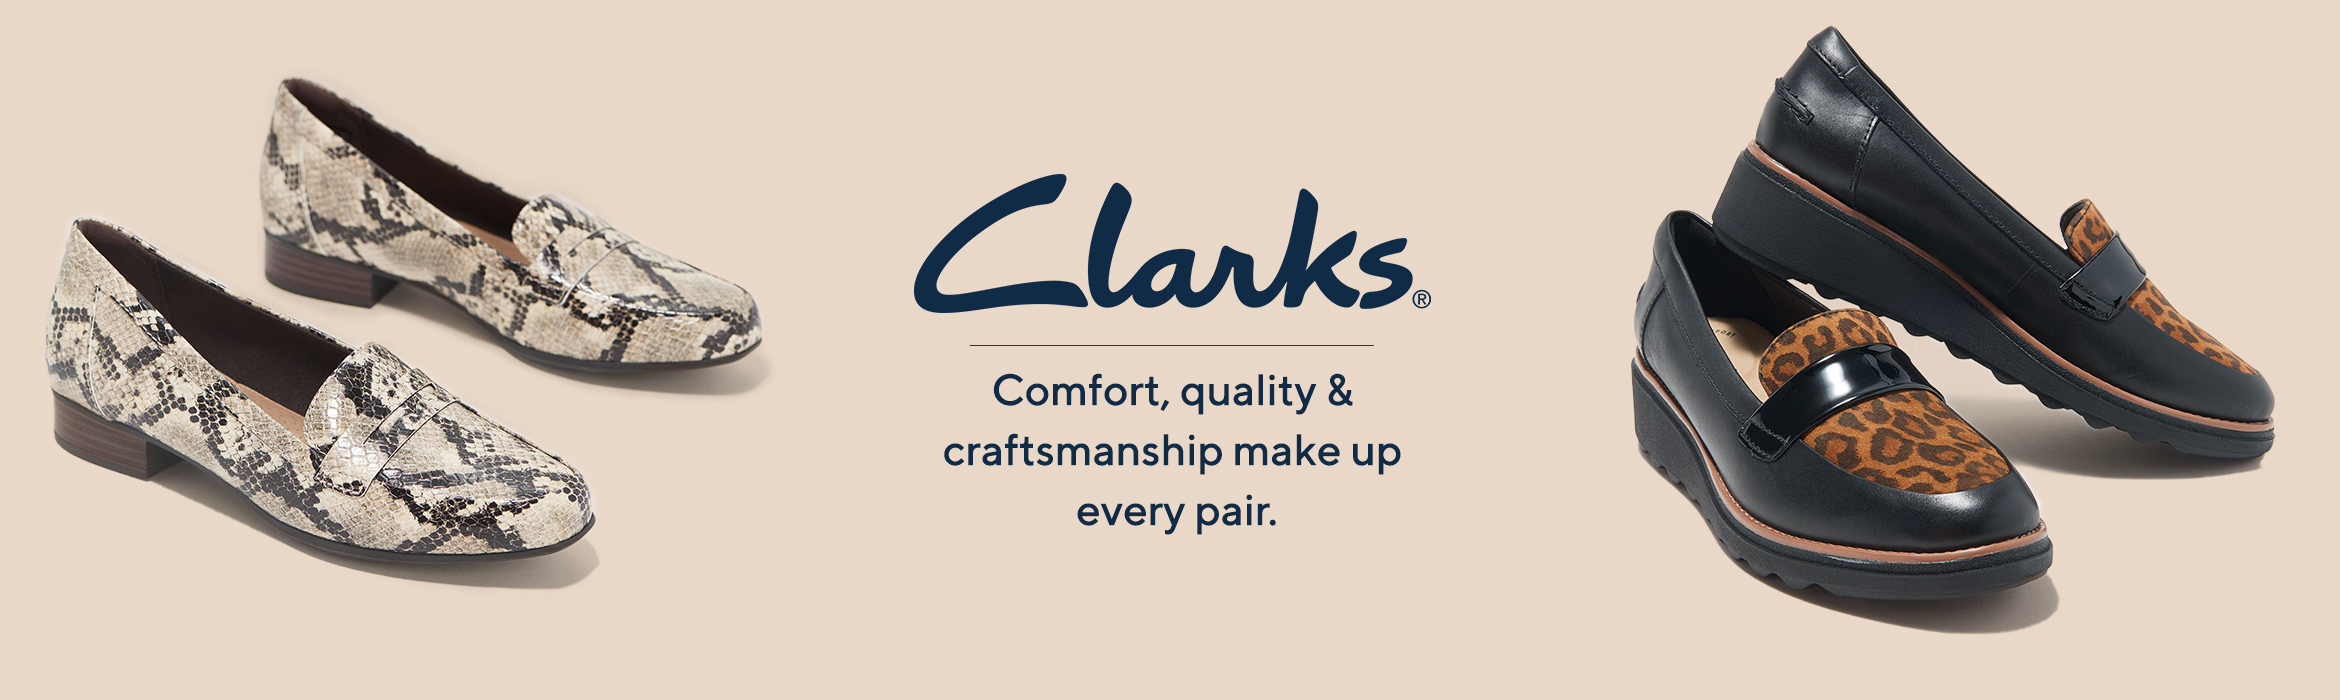 Clarks. Comfort, quality & craftsmanship make up every pair.